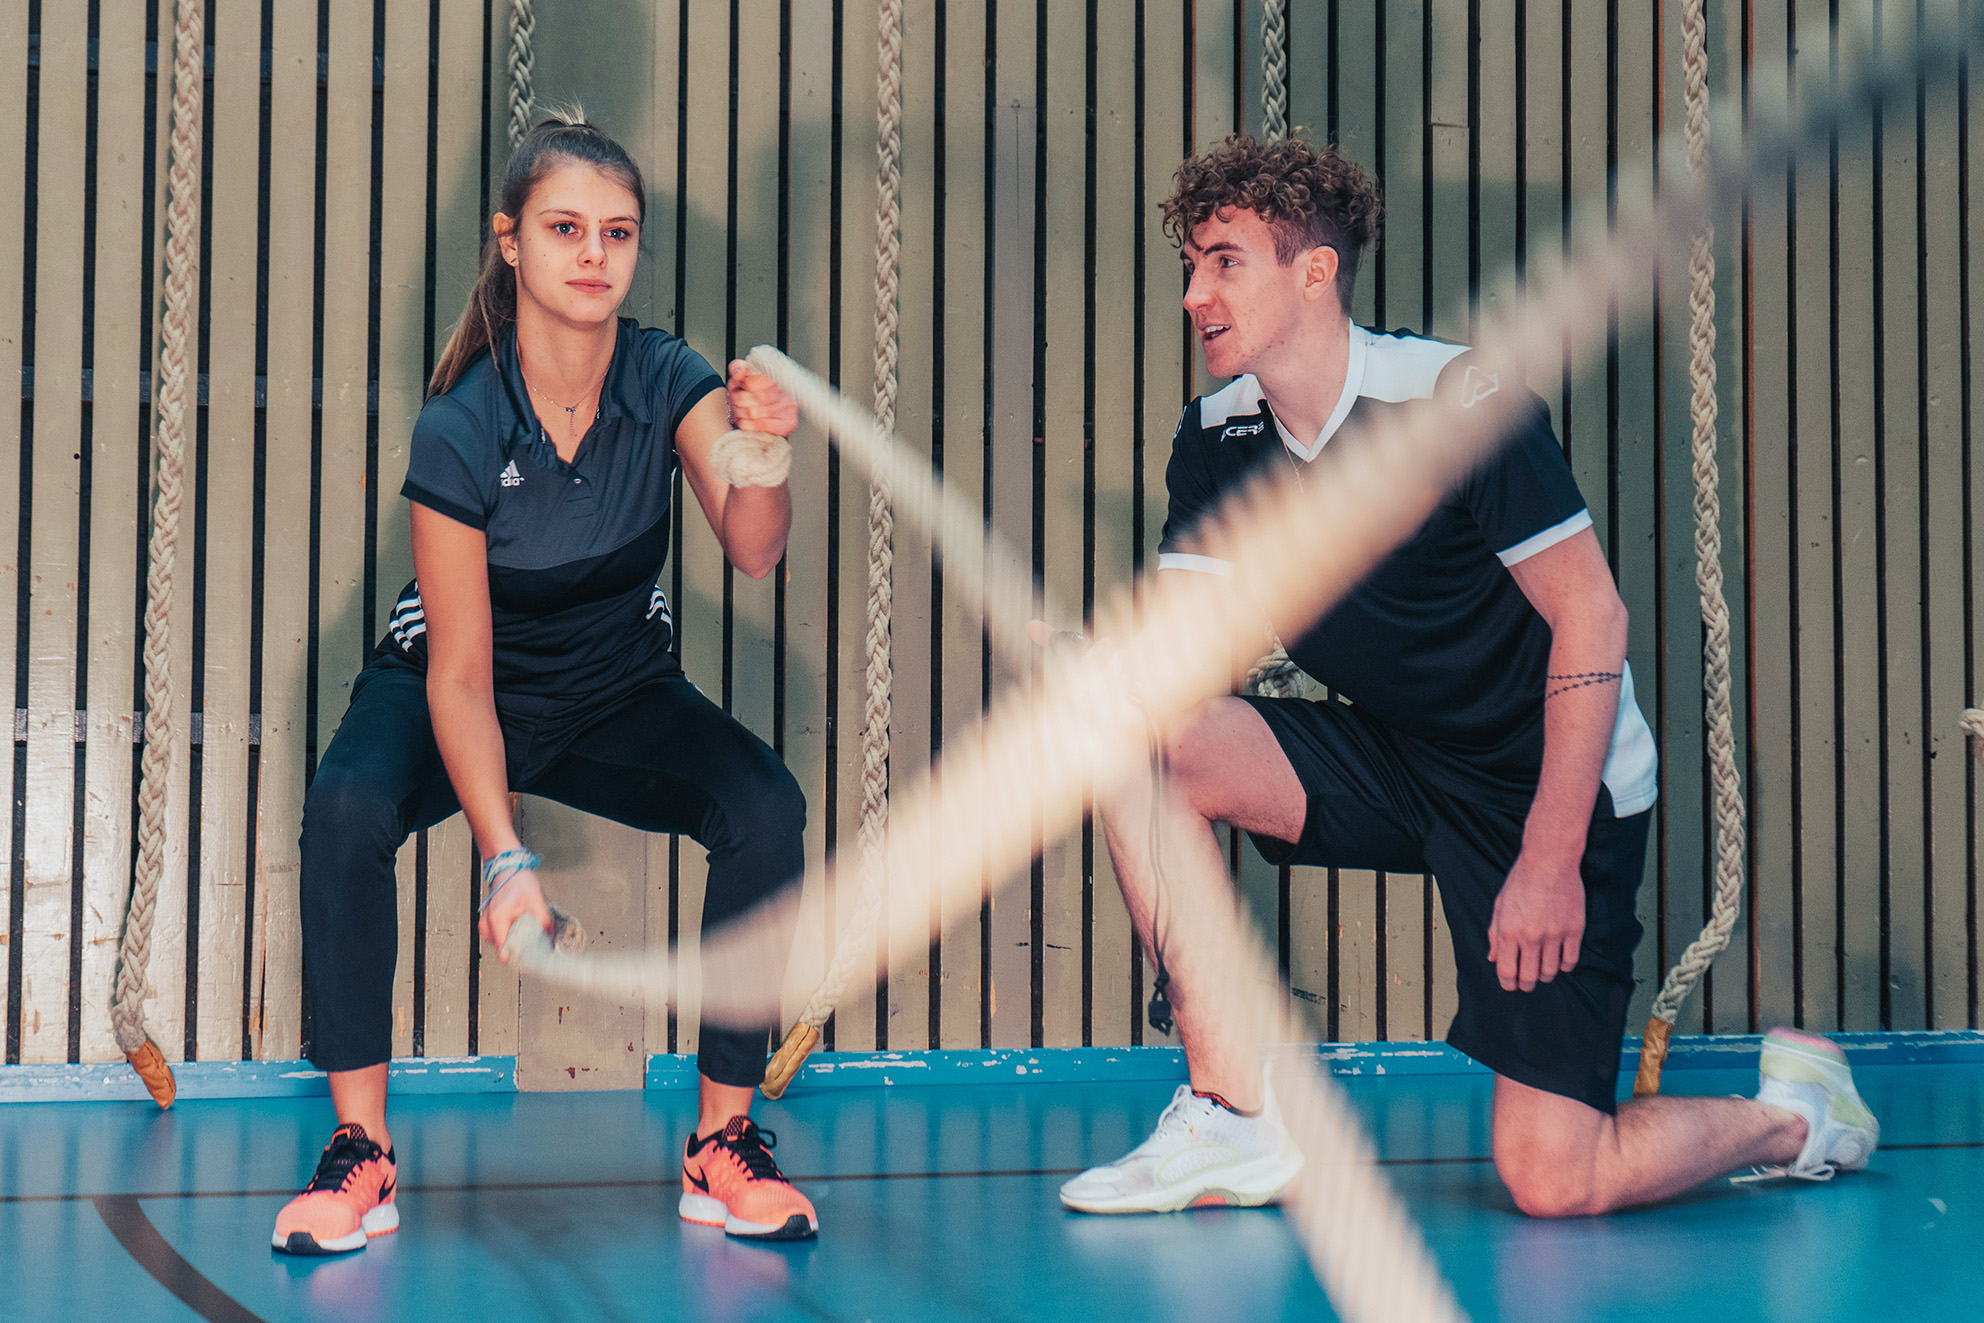 A woman does exercises with ropes while a trainer encourages her from the side.